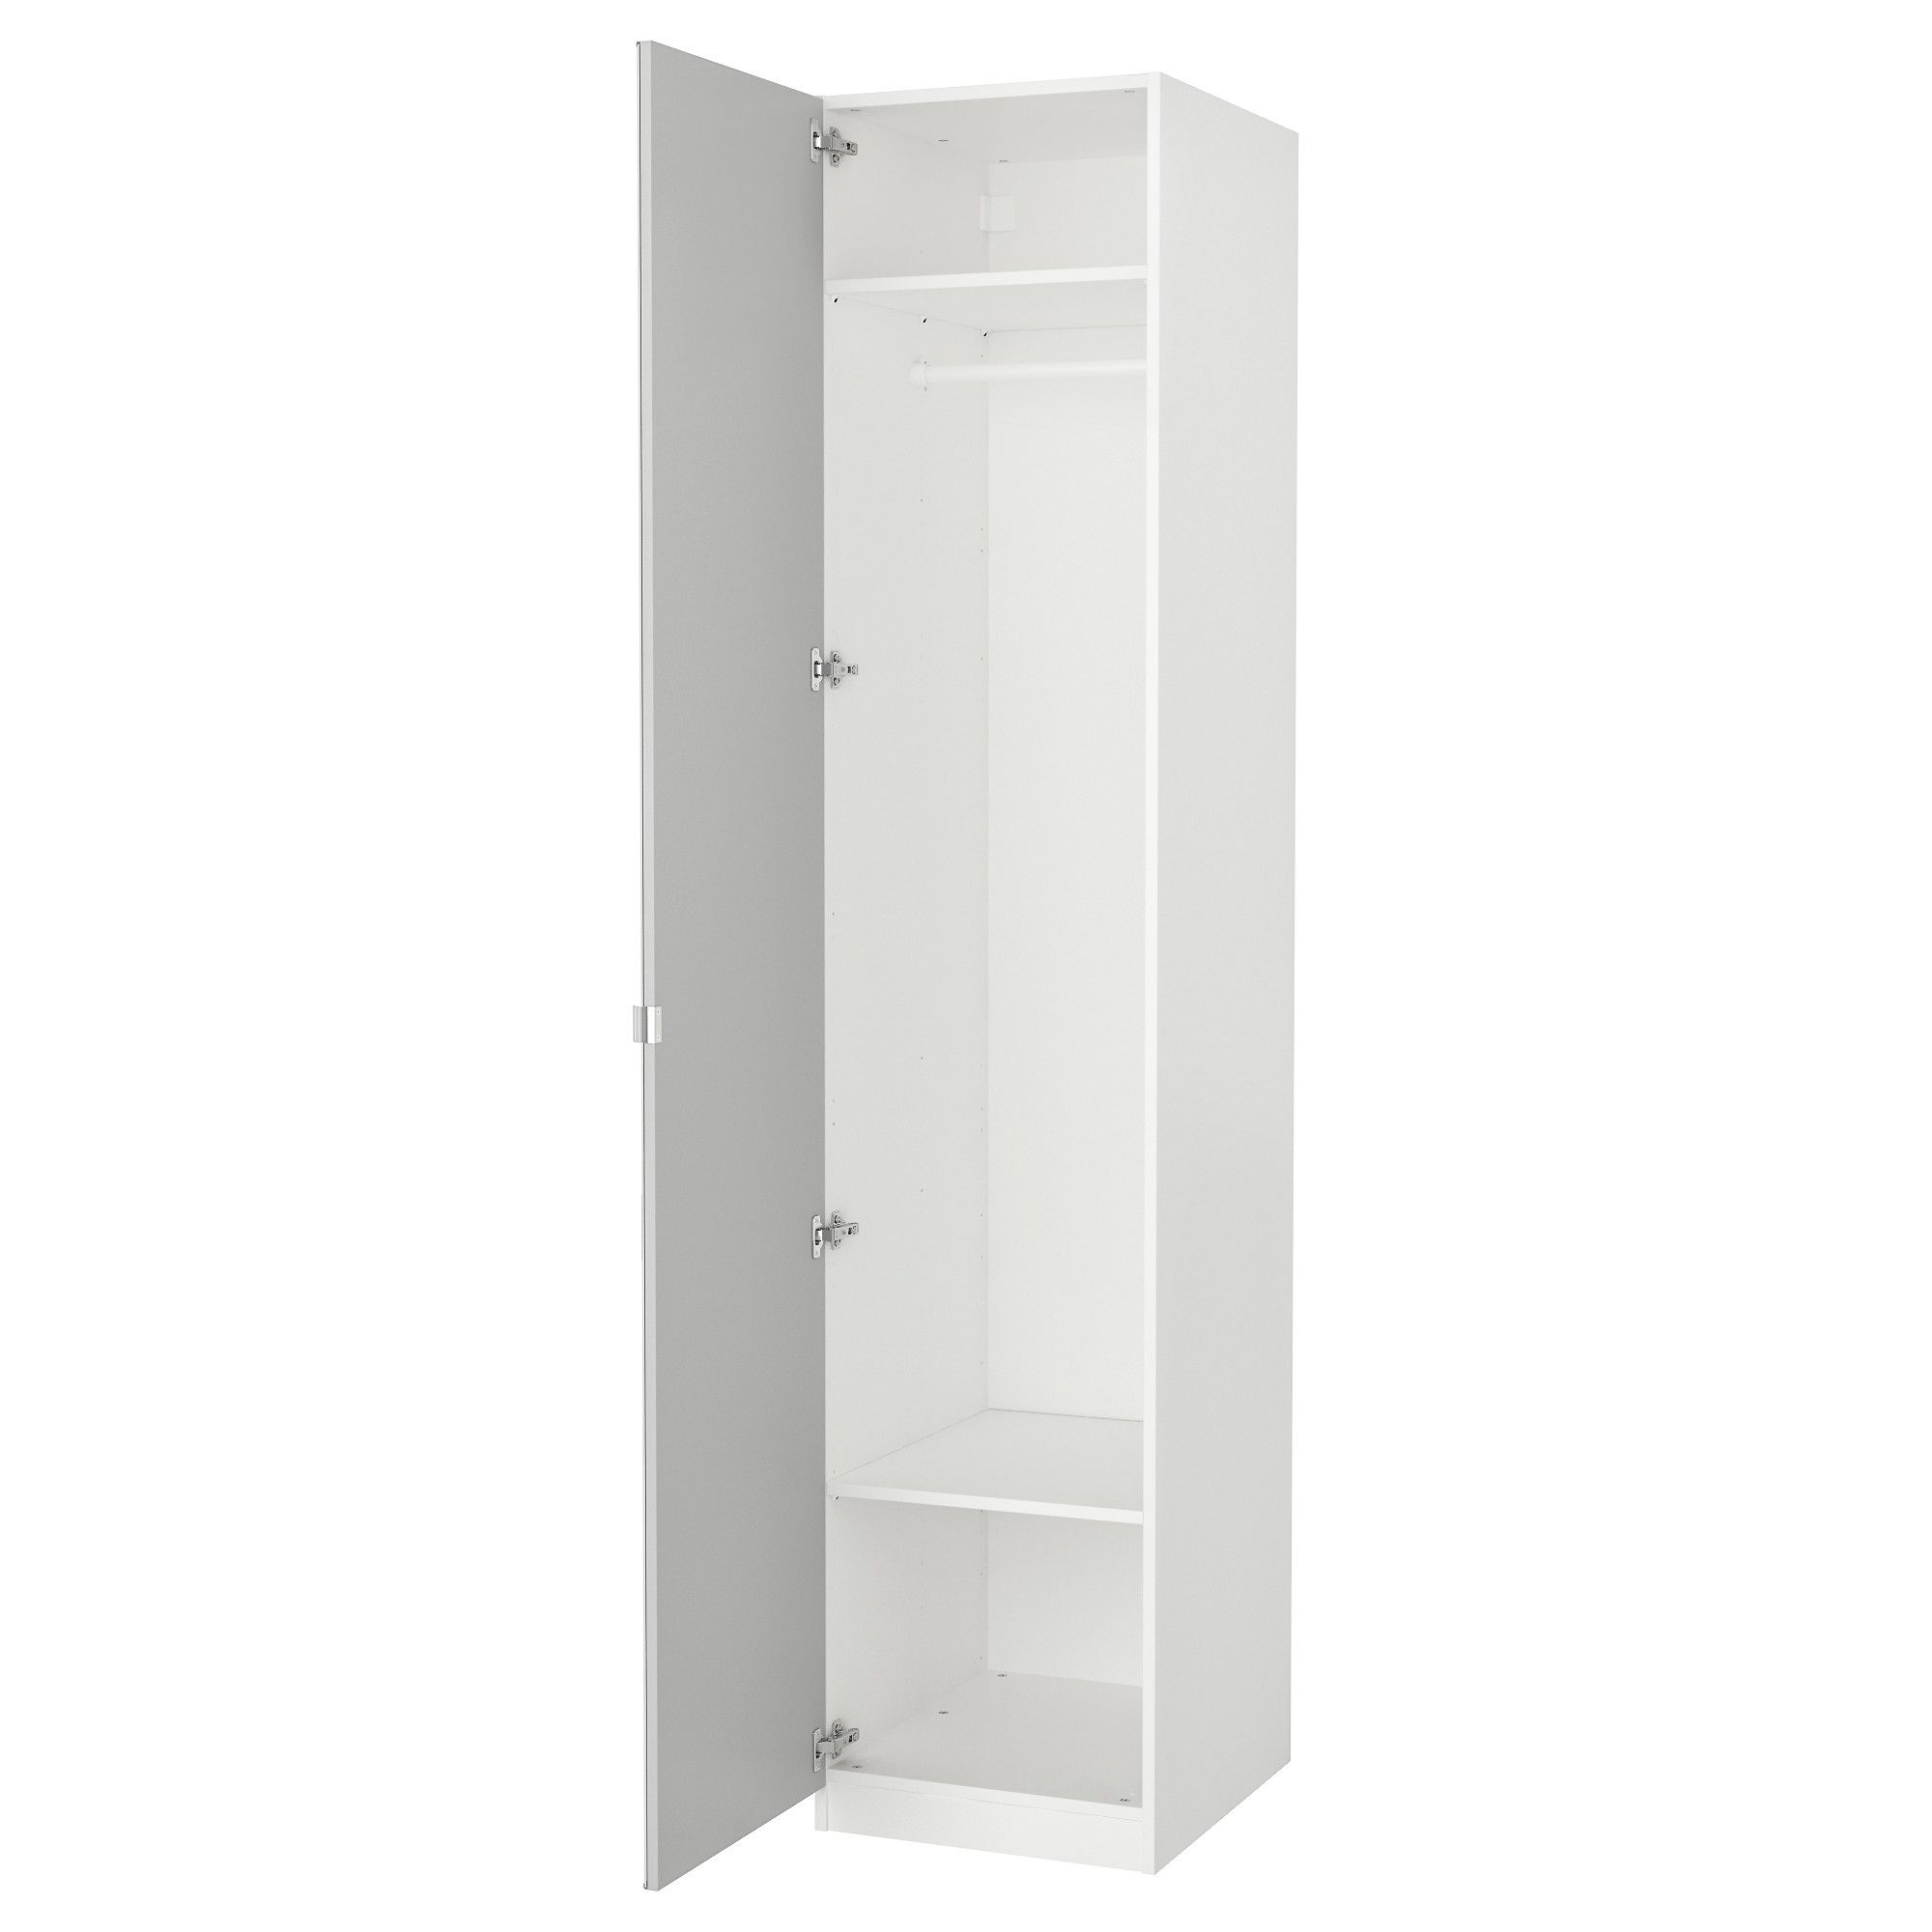 pax armoire penderie blanc vikedal miroir ikea pax wardrobe ikea pax and pax wardrobe. Black Bedroom Furniture Sets. Home Design Ideas